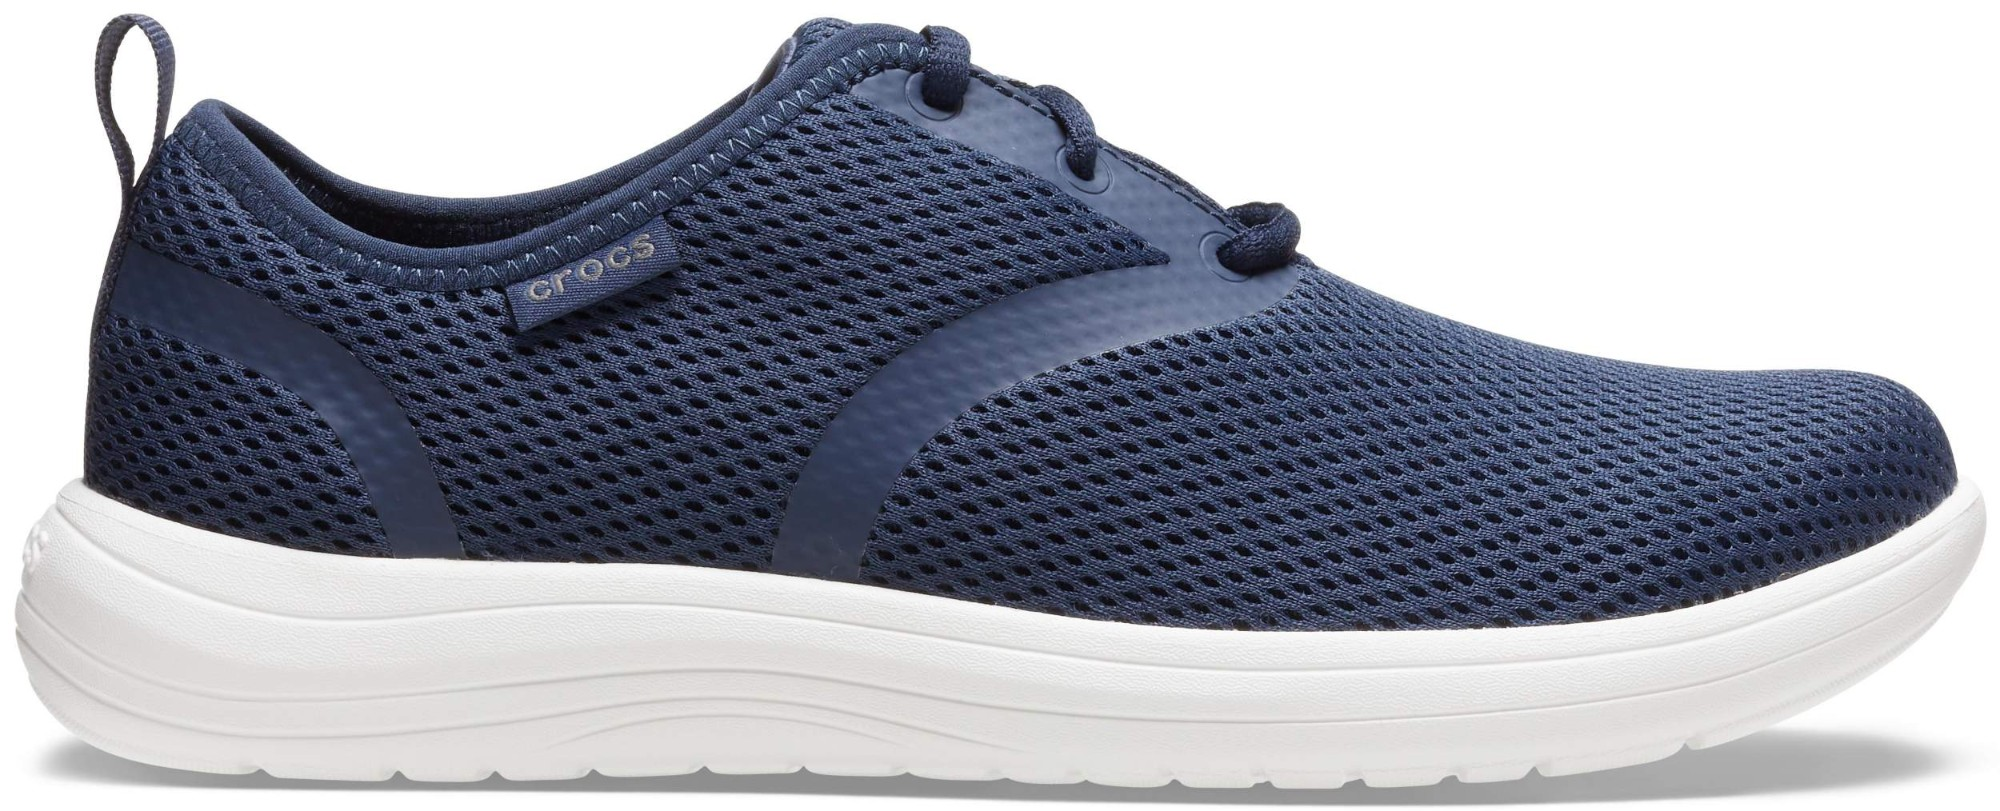 Crocs™ Reviva Lace Men's Navy/White 39,5